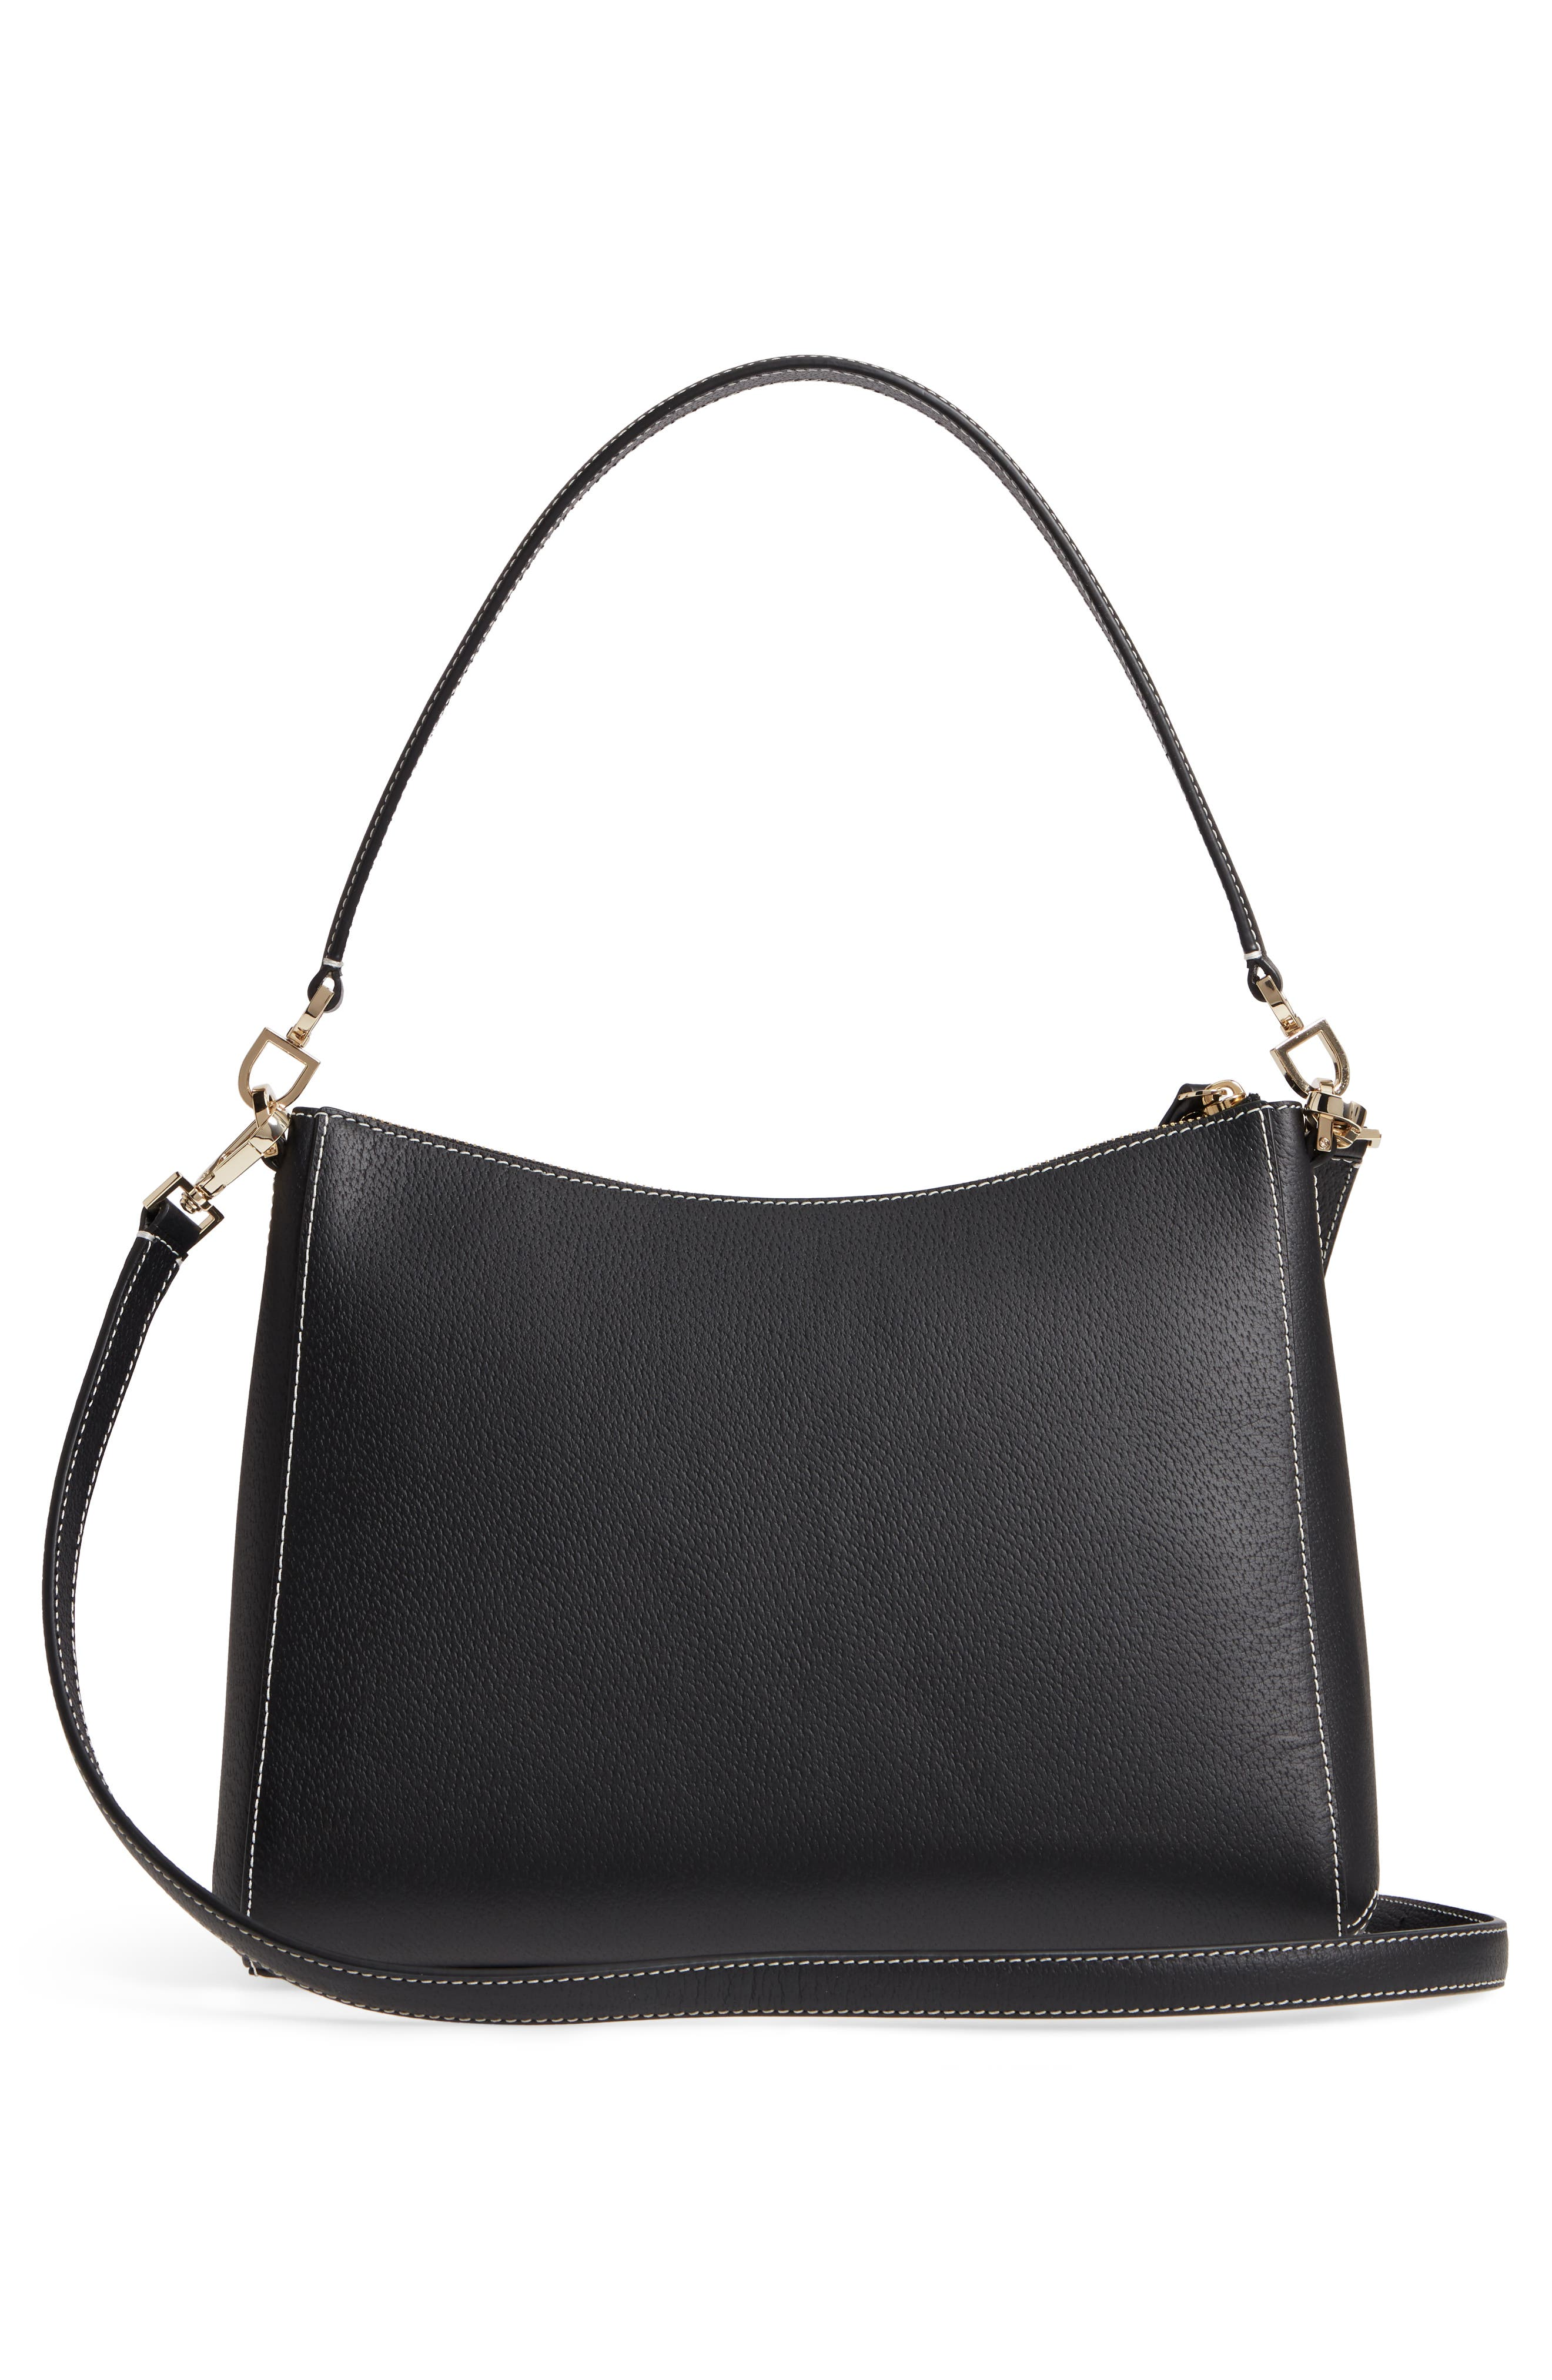 thompson street - marti leather shoulder/crossbody bag,                             Alternate thumbnail 3, color,                             001